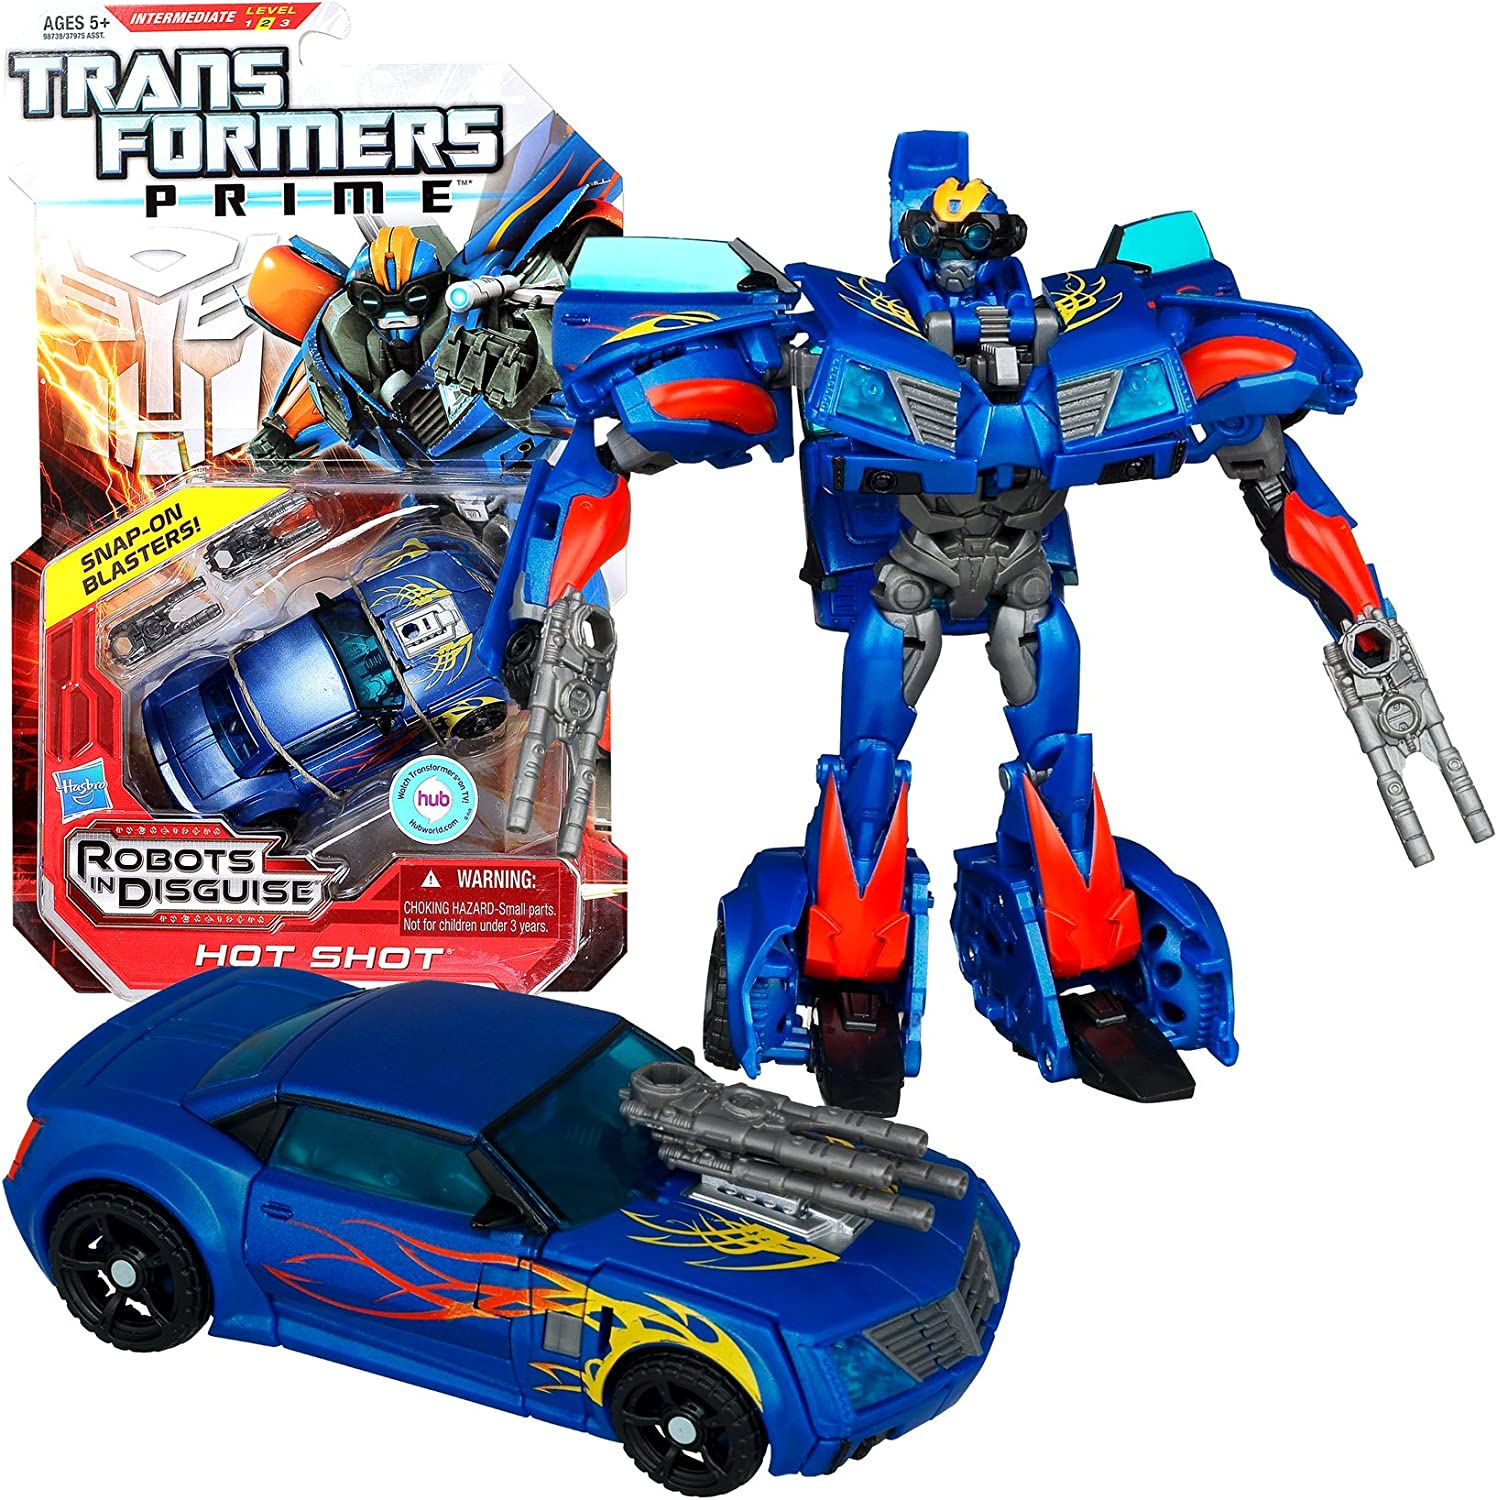 Hasbro Year 2011 Transformers Robots in Disguise Prime Series 1 Deluxe Class 6 Inch Tall Robot Action Figure  9  Autobot HOT SHOT with 2 SnapOn Blasters (Vehicle Mode  Sports Car) by Transformers